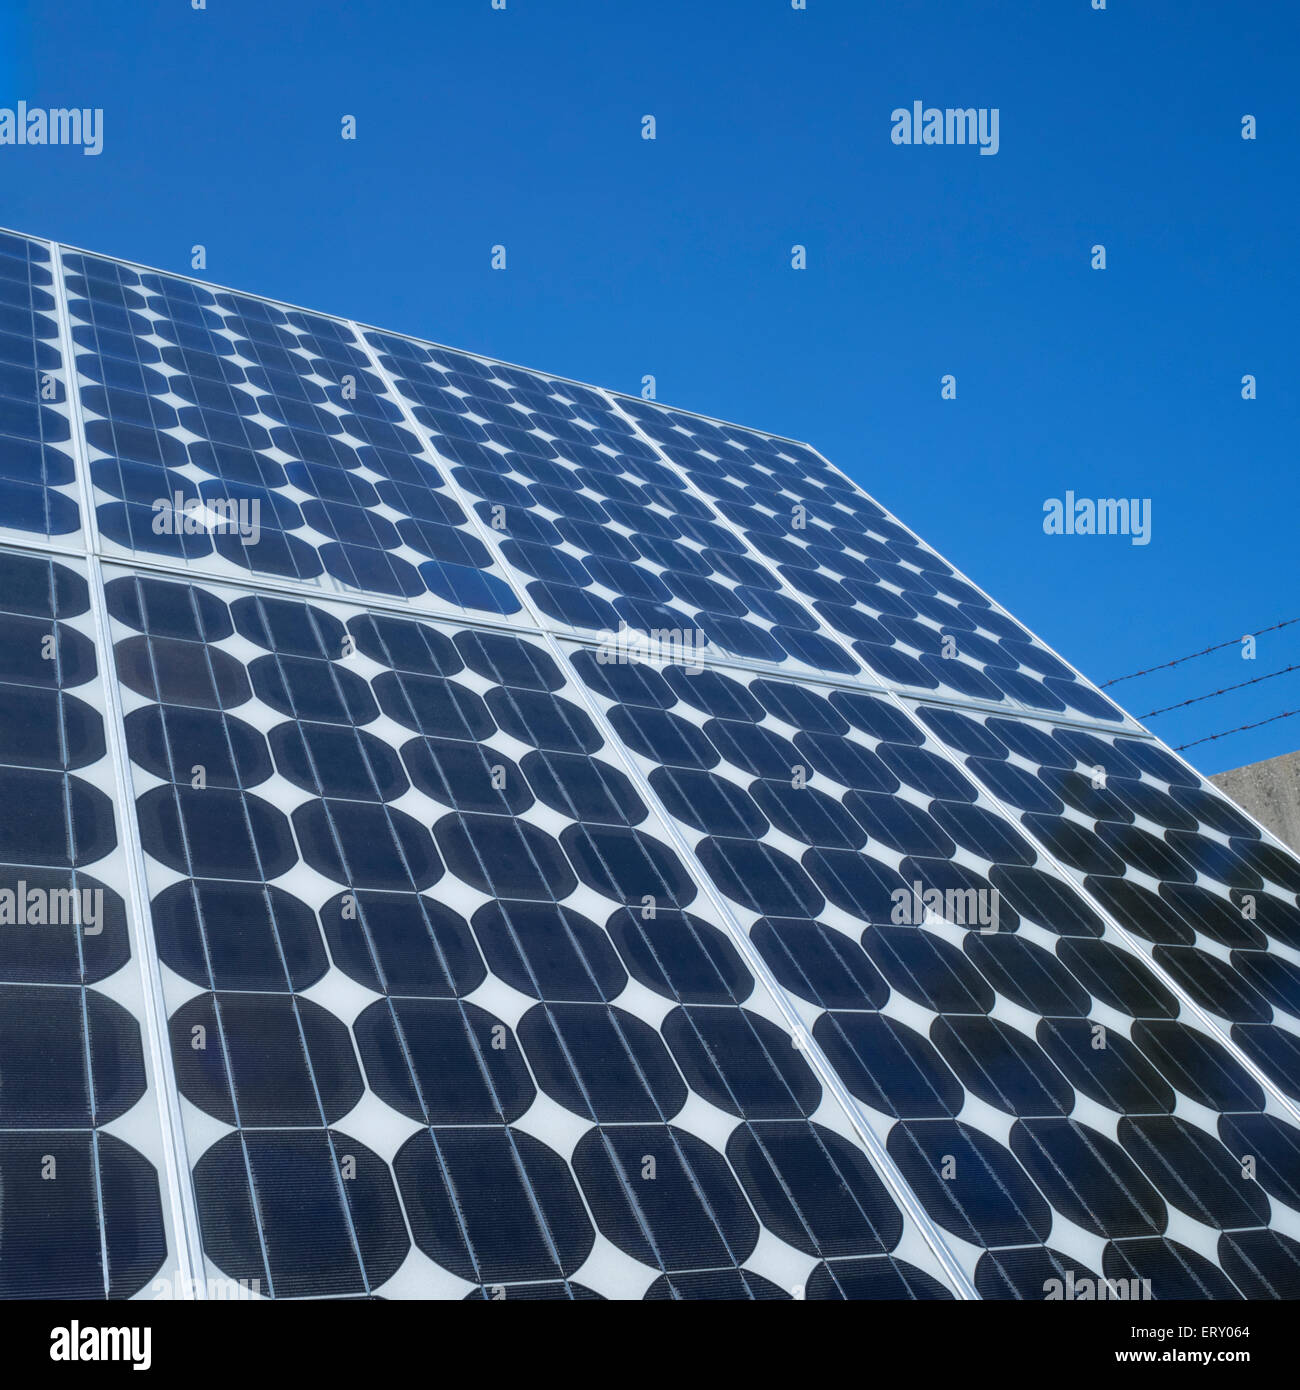 Pannello solare fotovoltaico in array di celle close up blue sky spazio copia fonti energetiche pulite eco-friendly Immagini Stock